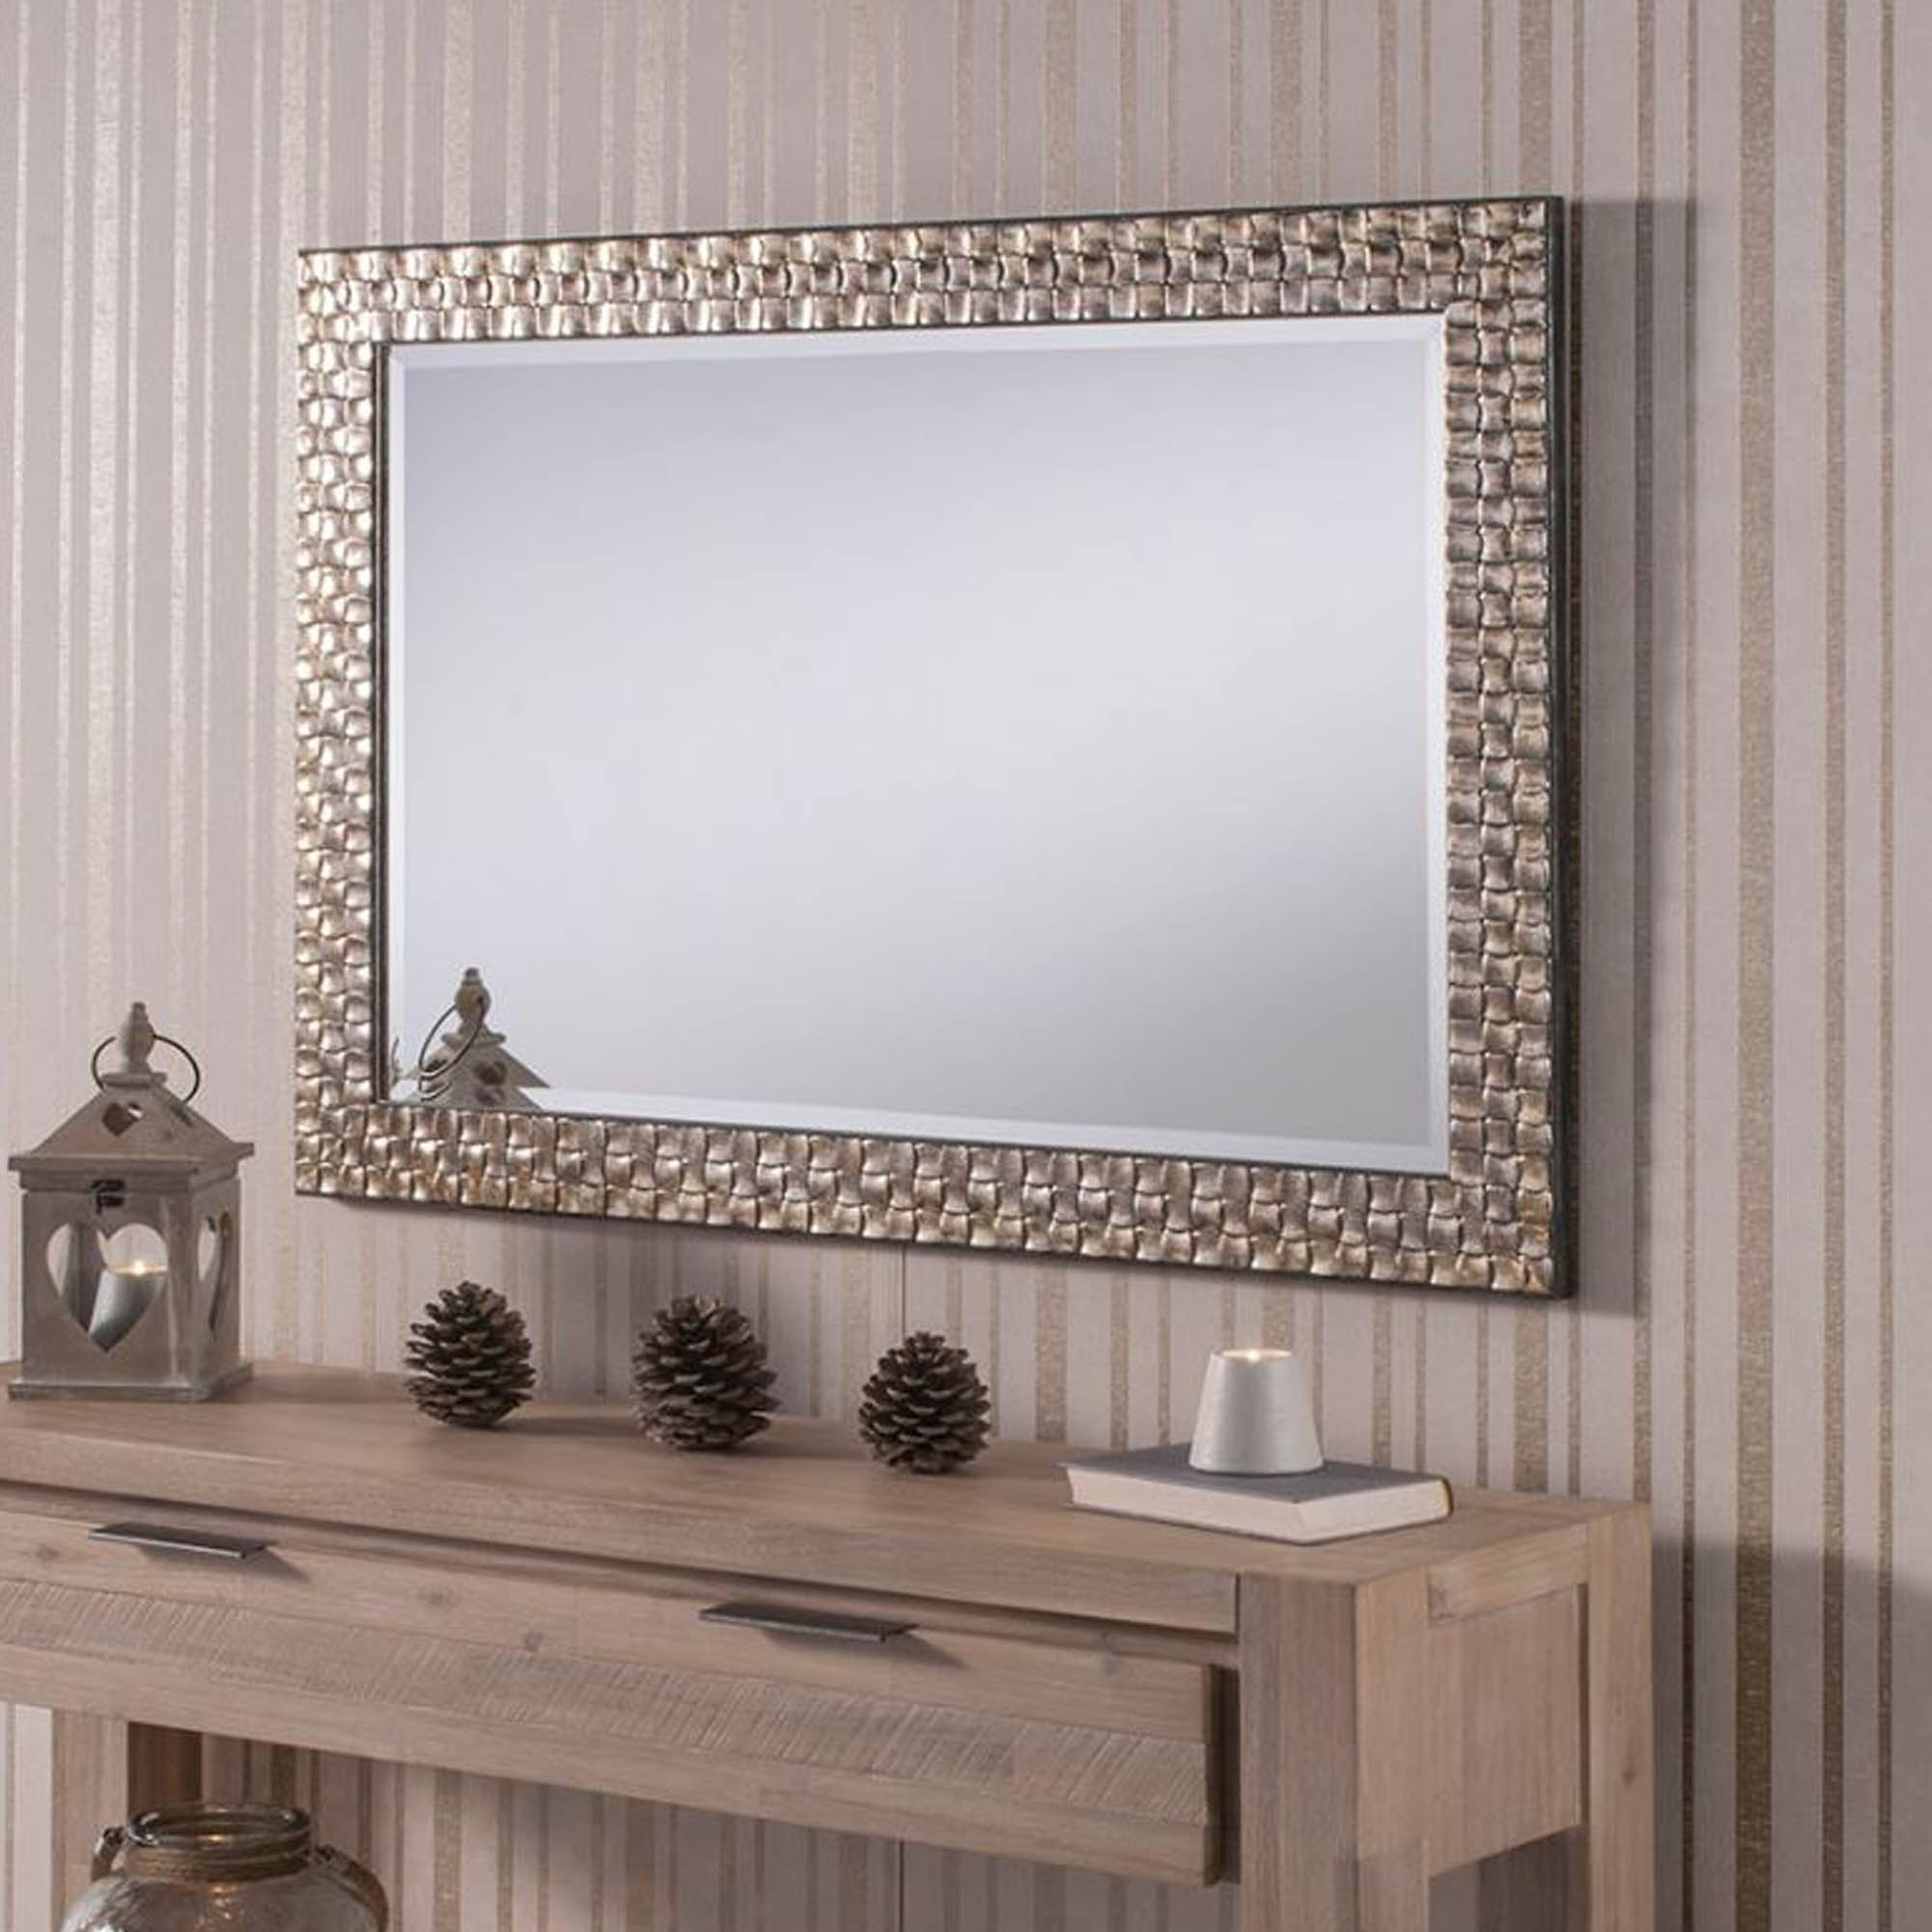 Widely Used Textured Antique Silver Rectangular Wall Mirror Throughout Antique Silver Wall Mirrors (Gallery 4 of 20)